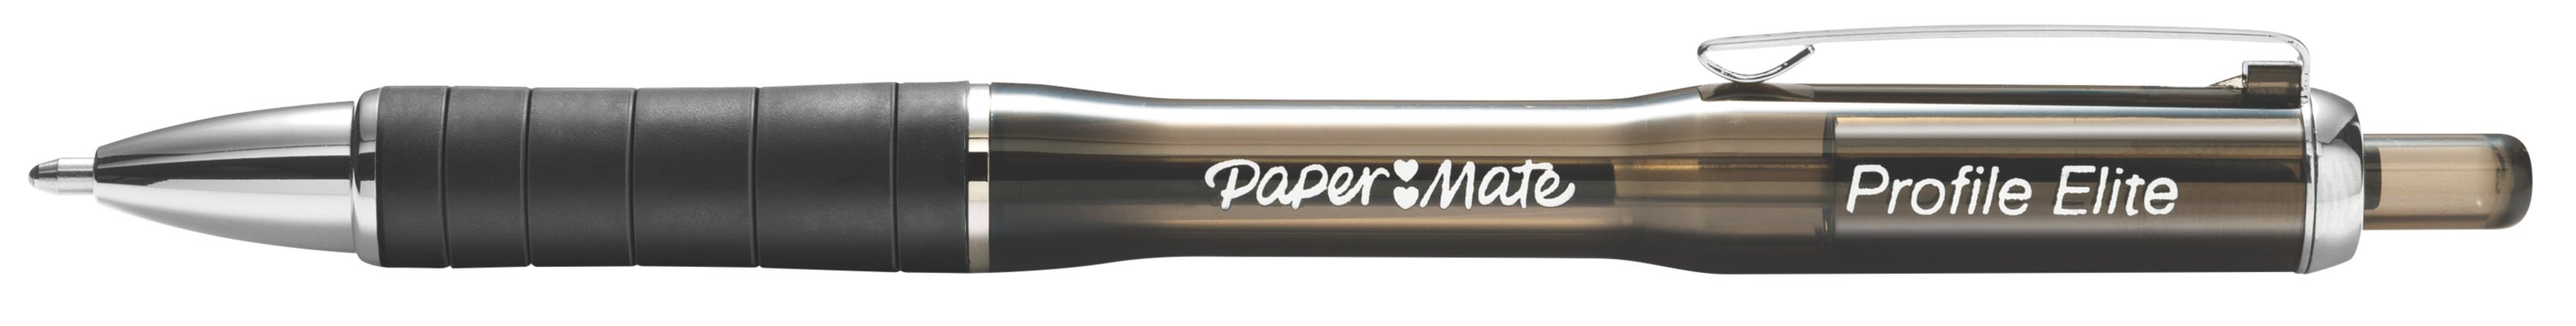 photograph relating to Paper Mate Coupons Printable identify Paper Pal Pens, Pencils, Coloring, Erasers Correction